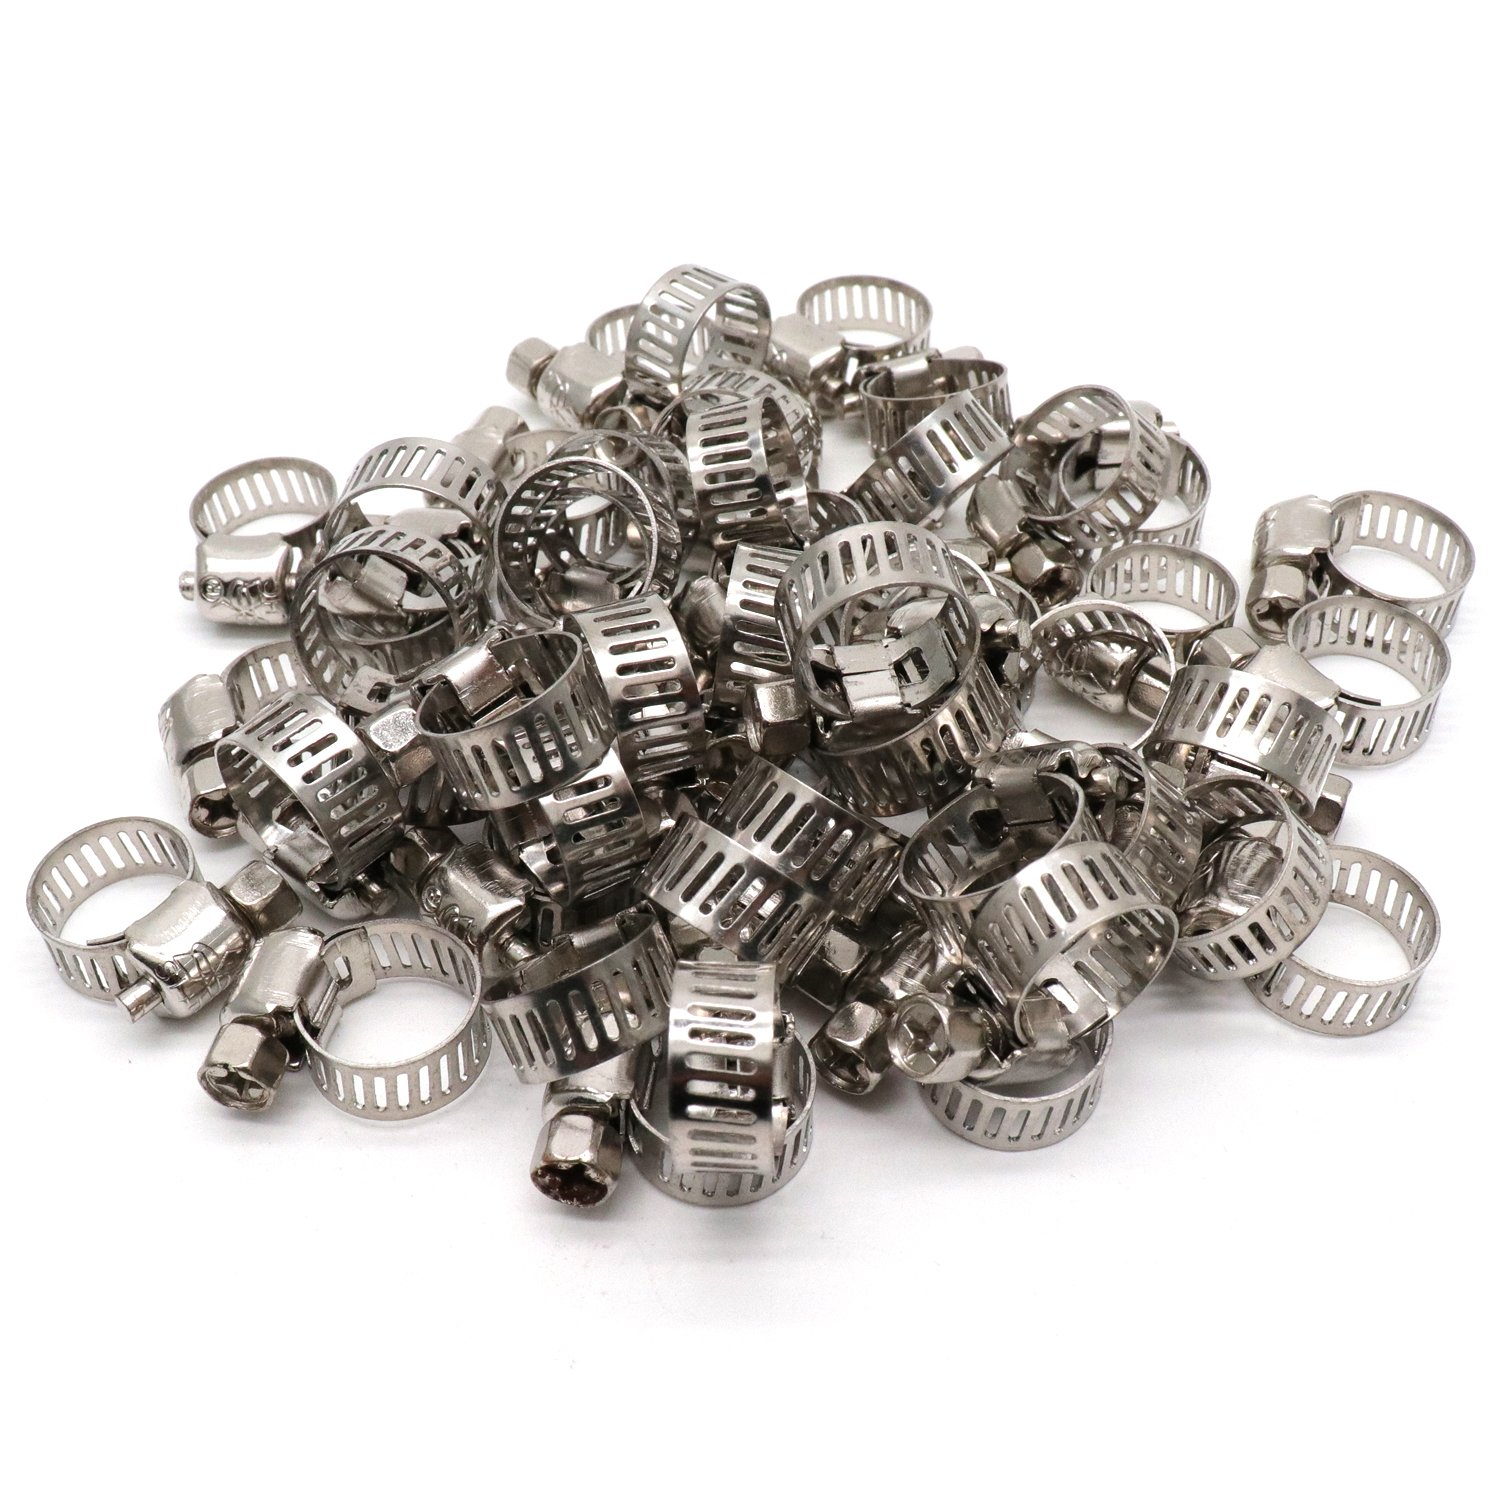 Yootop 50Pcs 0.24''-0.47'' Adjustable Range Worm Drive Hose Clamps Stainless Steel Pipe Clips